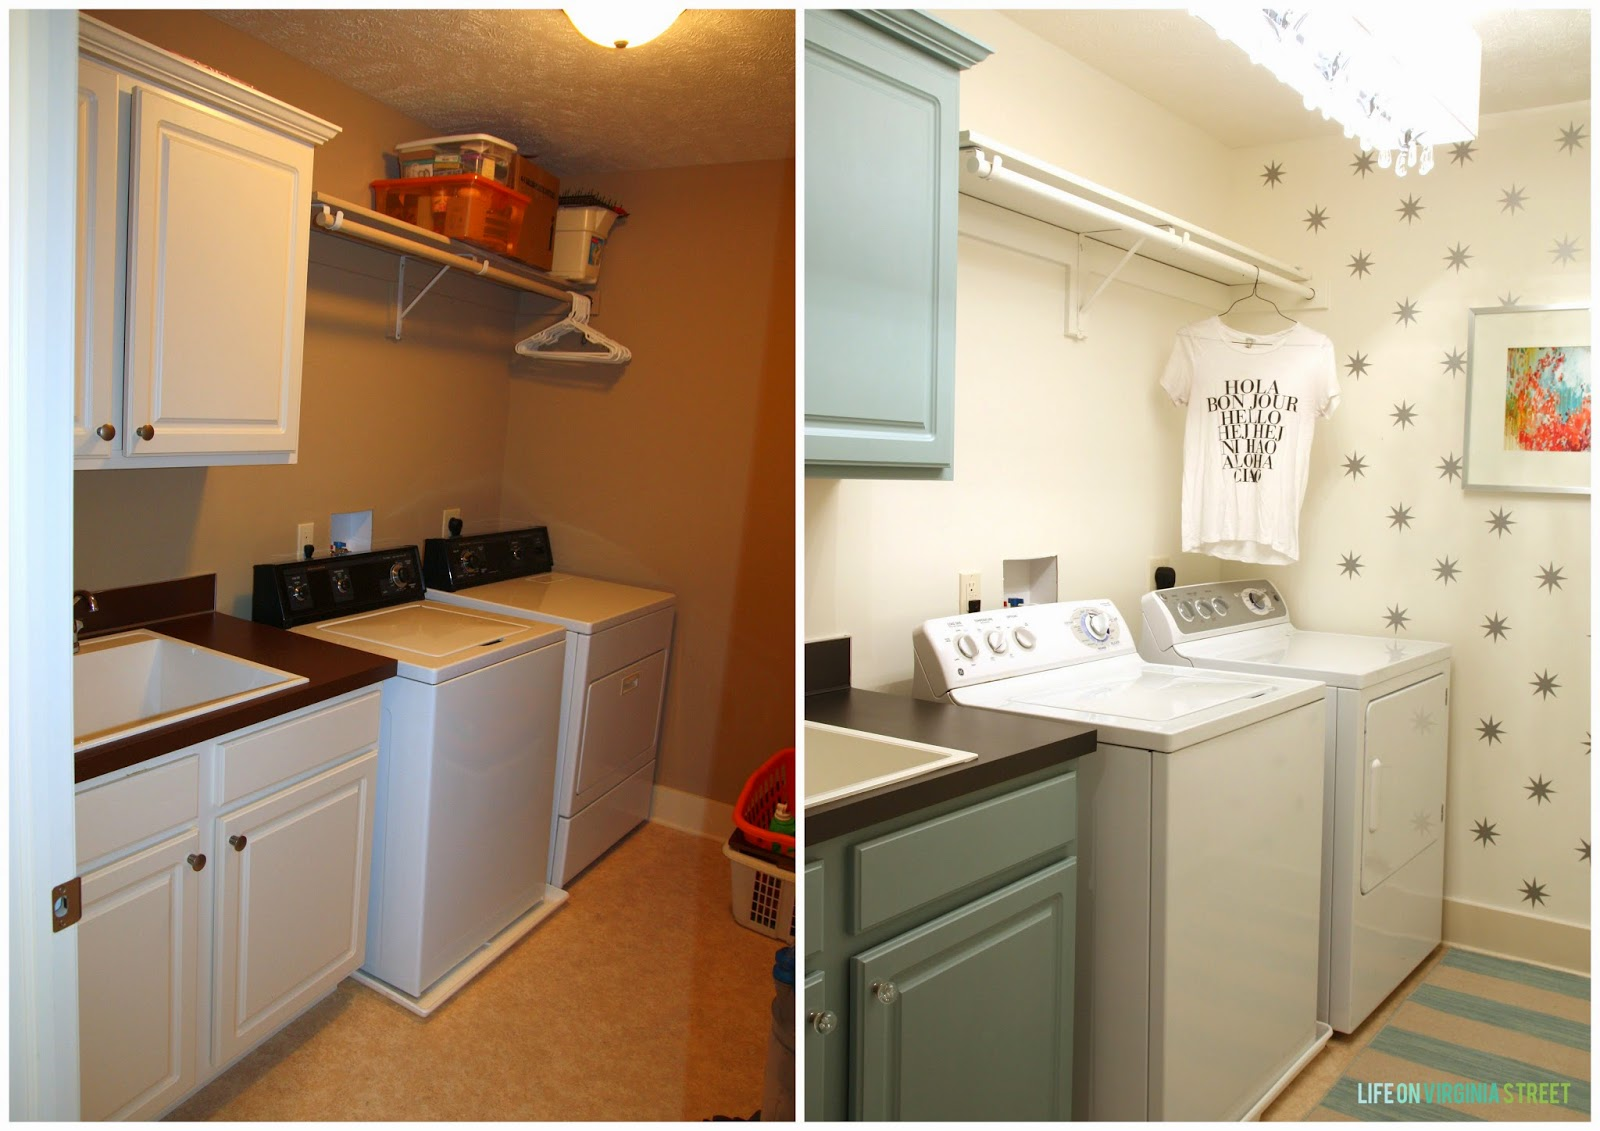 A Year Of Change Laundry Room Reveal Life On Virginia